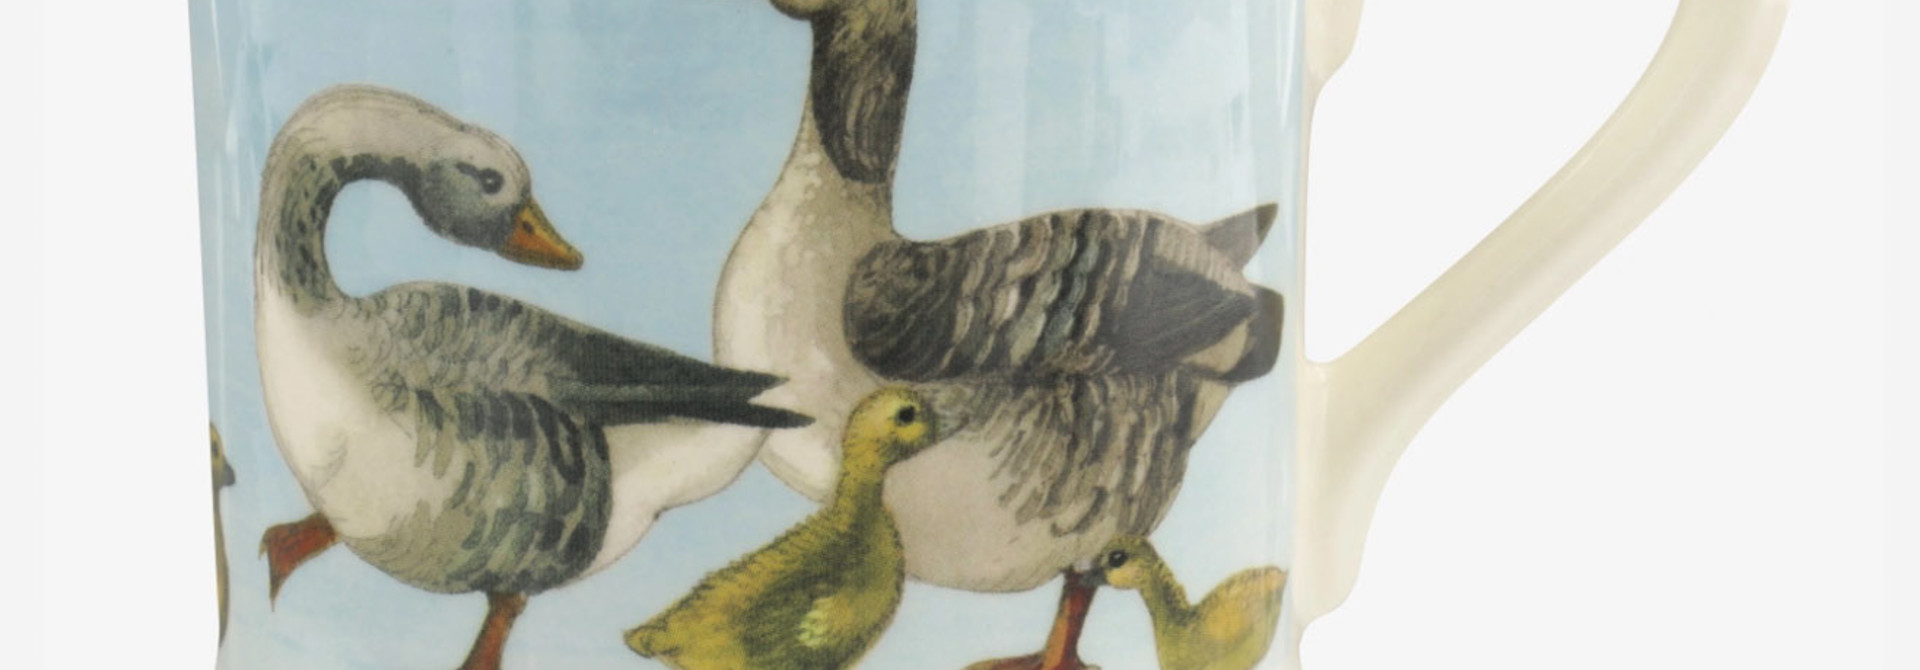 Bright New Morning Goose & Goslings - 1/2 Pint Mug